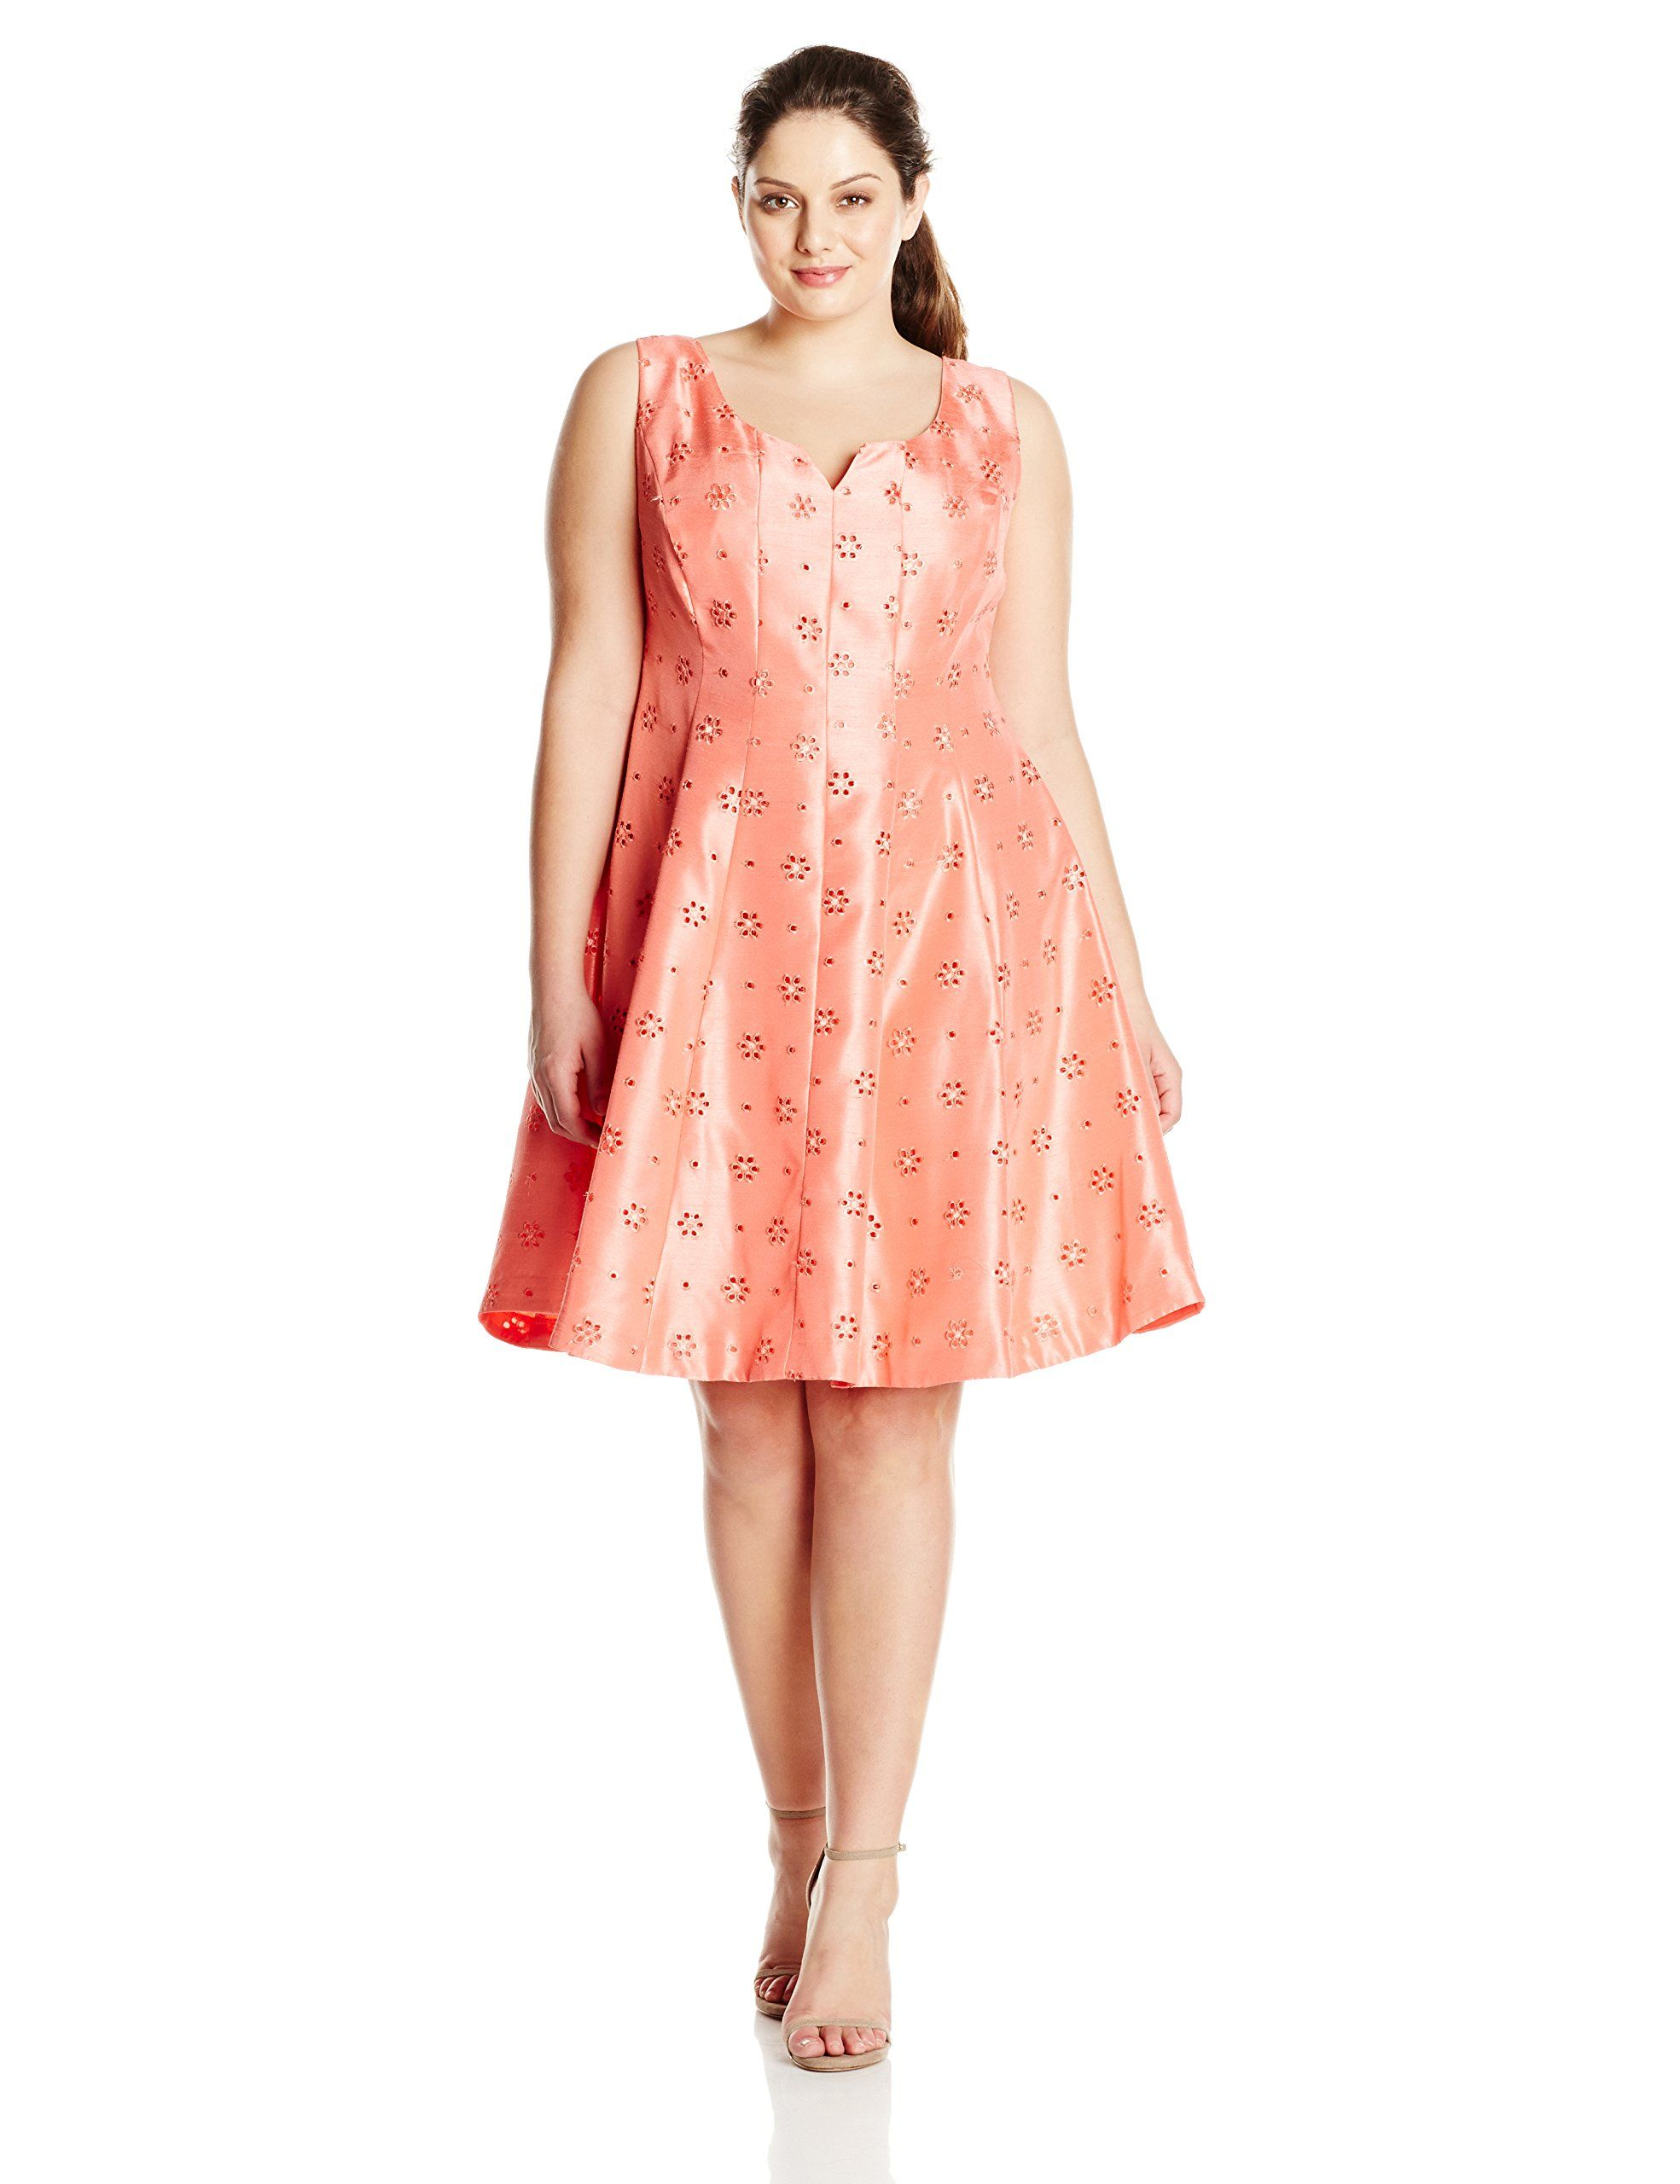 Plus size coral dress for wedding  Taylor Dresses Womens PlusSize Fit and Flare Shantung Eyelet Coral